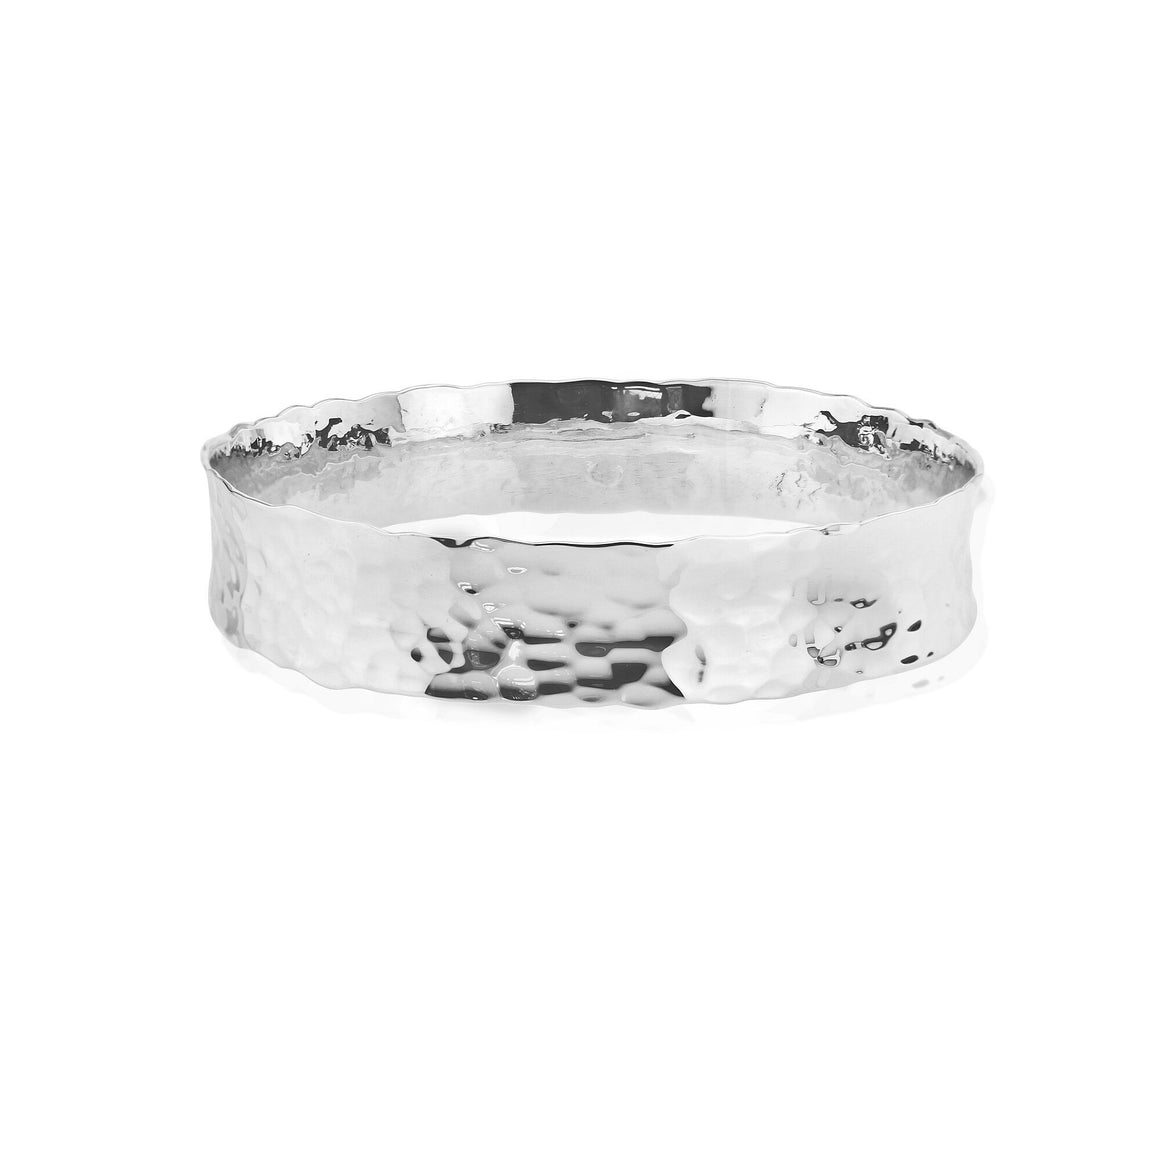 Solid Silver flat Hammered bangle in a round design